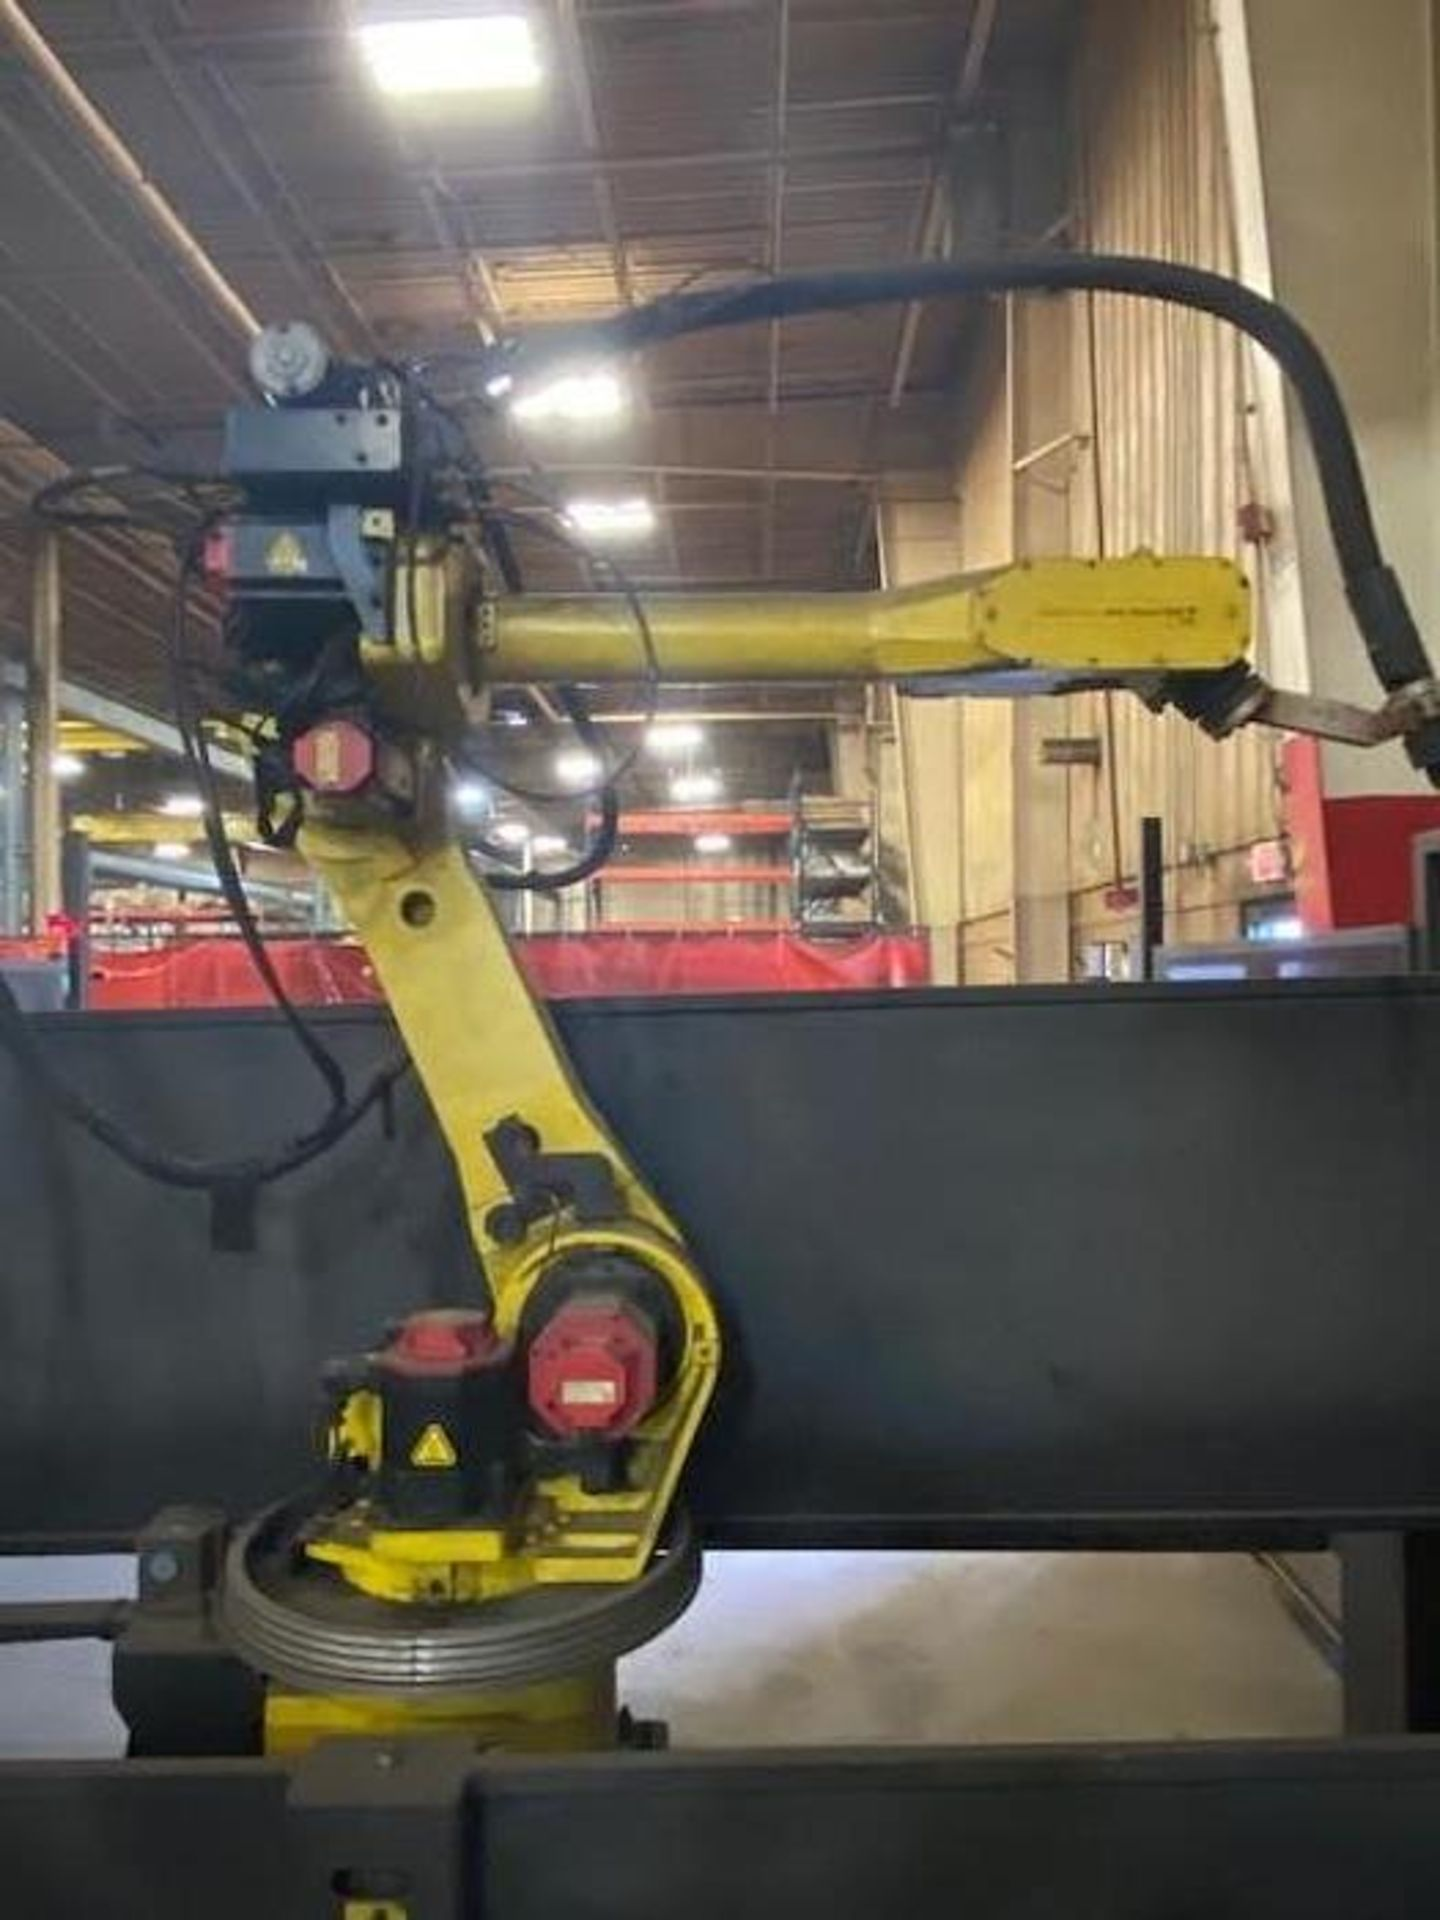 FANUC/LINCOLN DUAL TRUNION WELD CELL, FANUC ROBOT ARCMATE 120iB/10L WITH R-J3iB CONTROL - Image 3 of 11